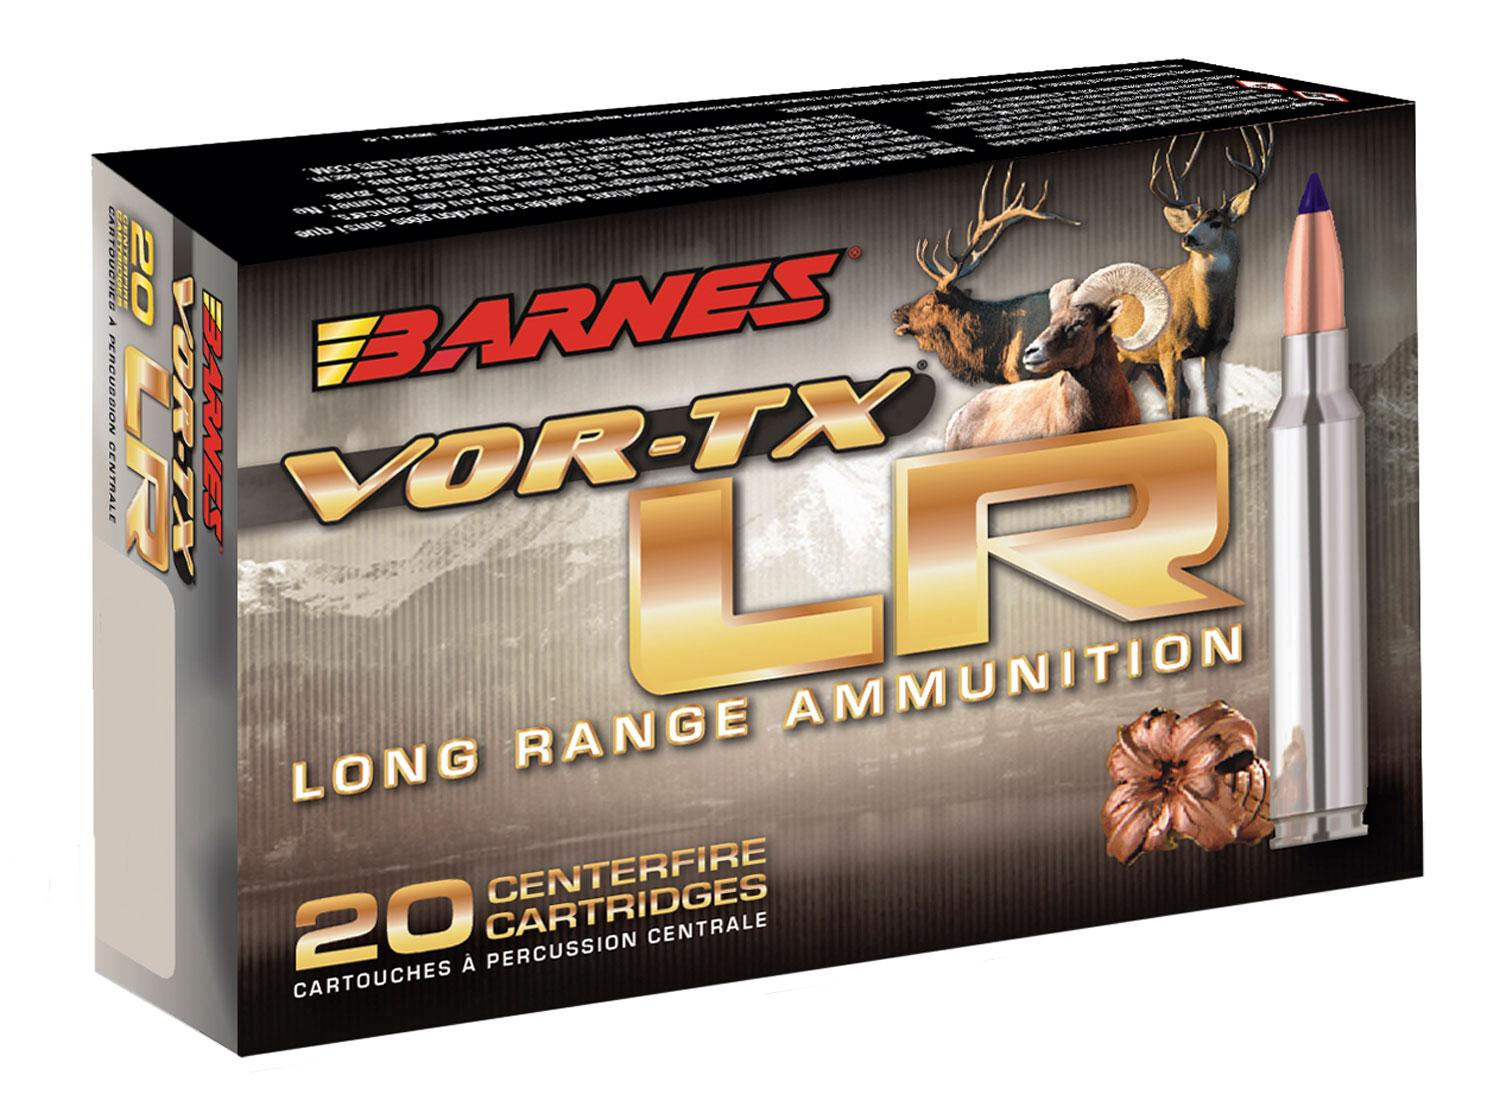 Barnes Bullets 29061 Vor- Tx 338 Remington Ultra Magnum (Rum) 250 Gr Lrx Boat Tail 20 Bx/10 Cs